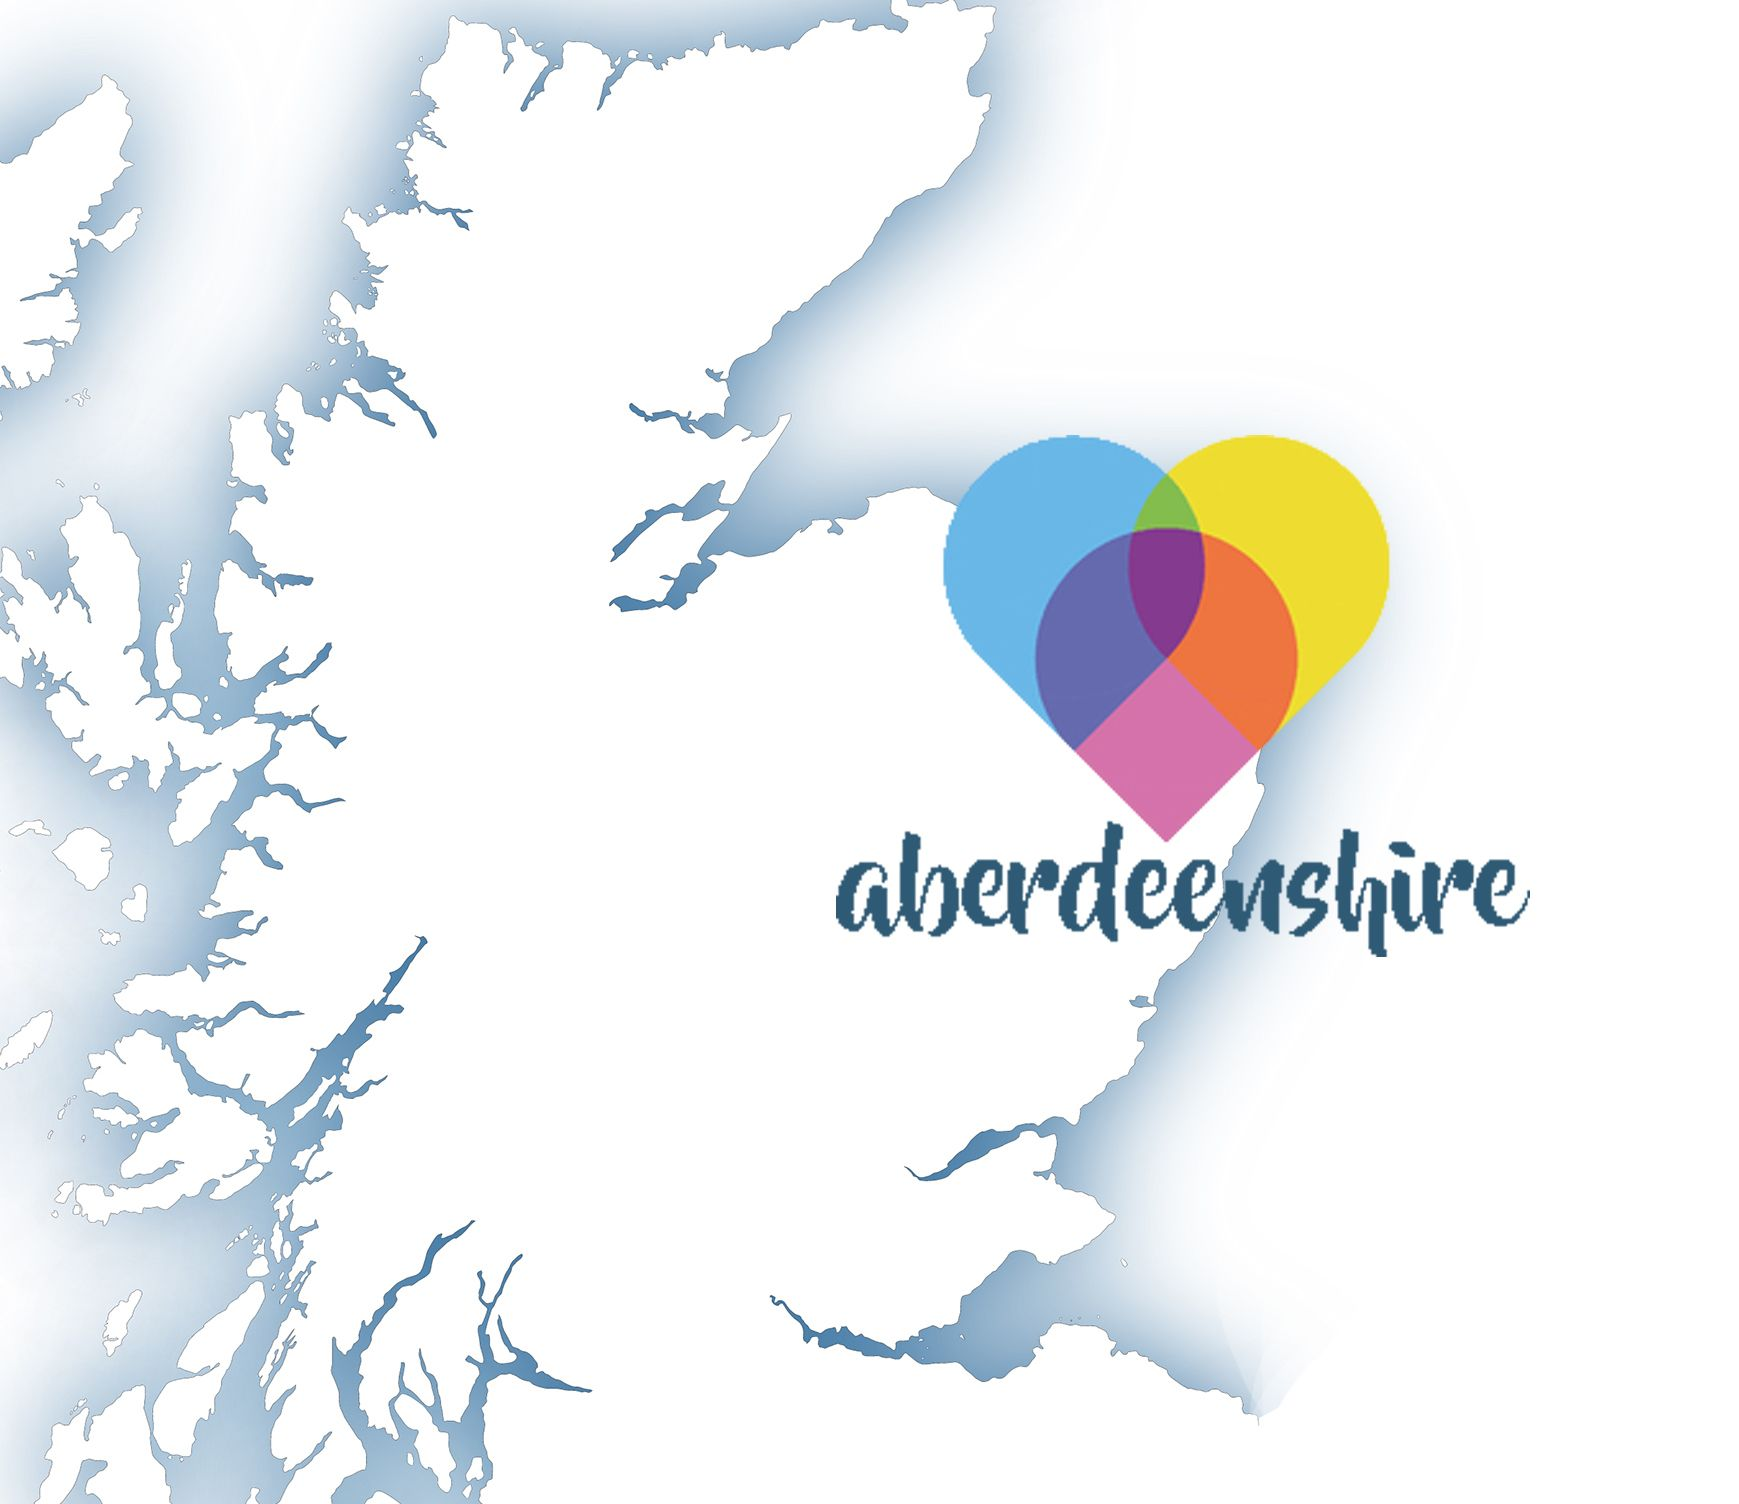 Map highlighting Aberdeenshire